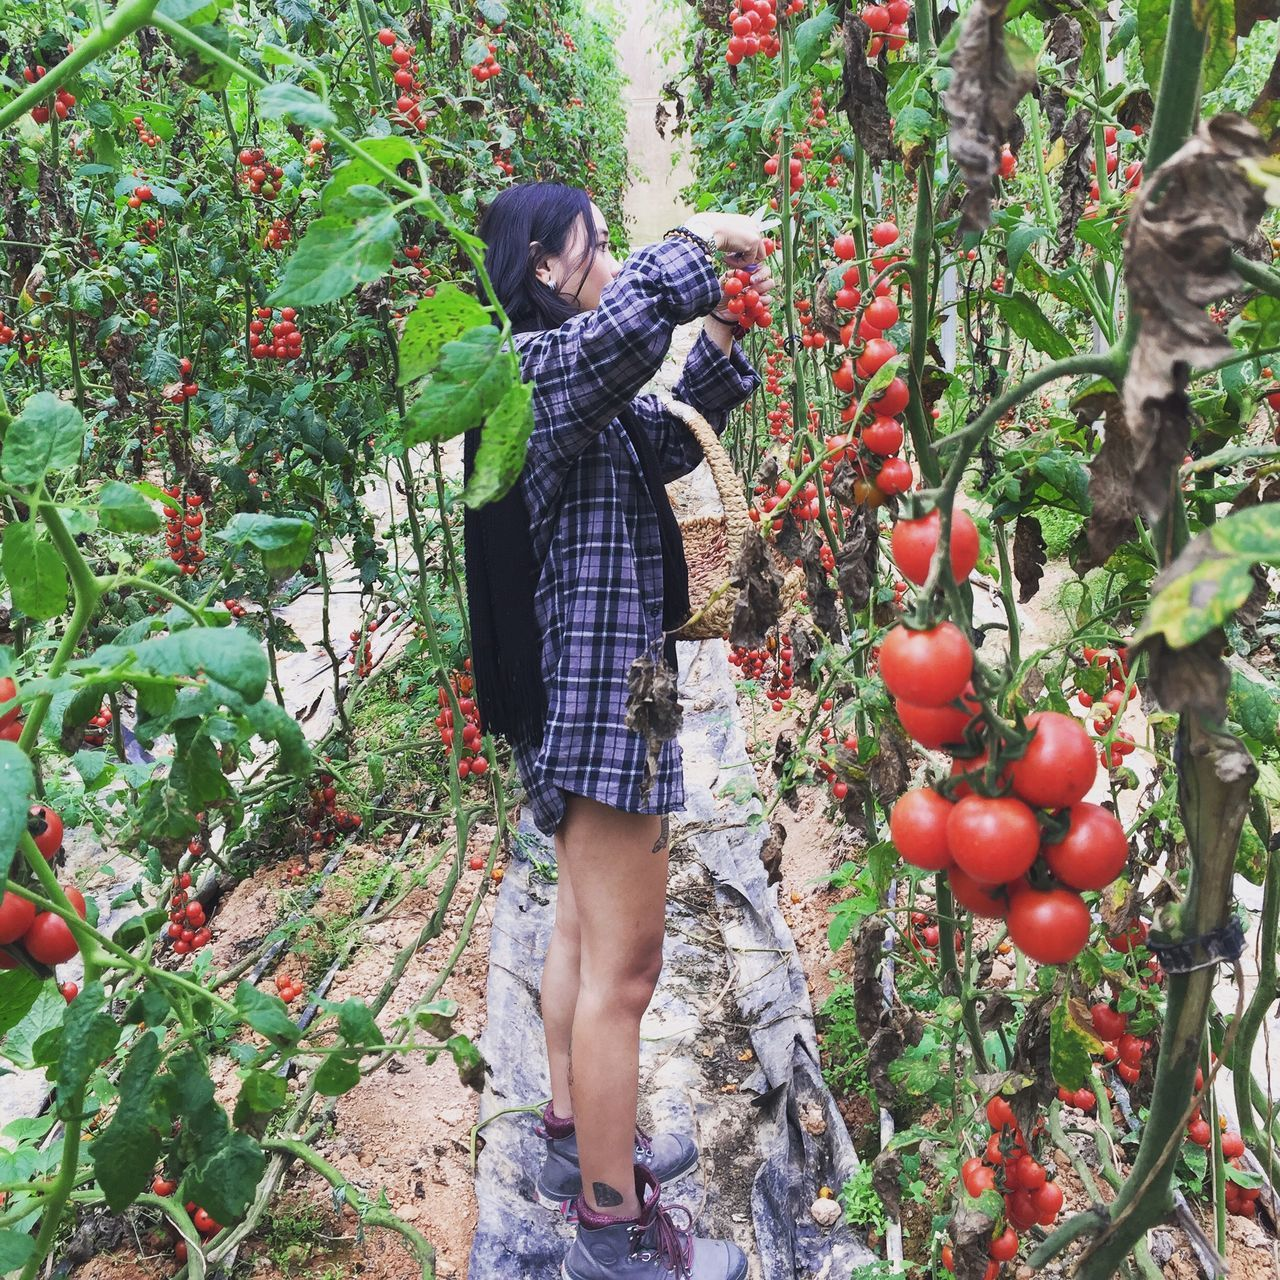 real people, growth, fruit, day, tree, plant, casual clothing, leisure activity, full length, lifestyles, outdoors, standing, food and drink, nature, women, food, childhood, freshness, healthy eating, men, young women, young adult, adult, people